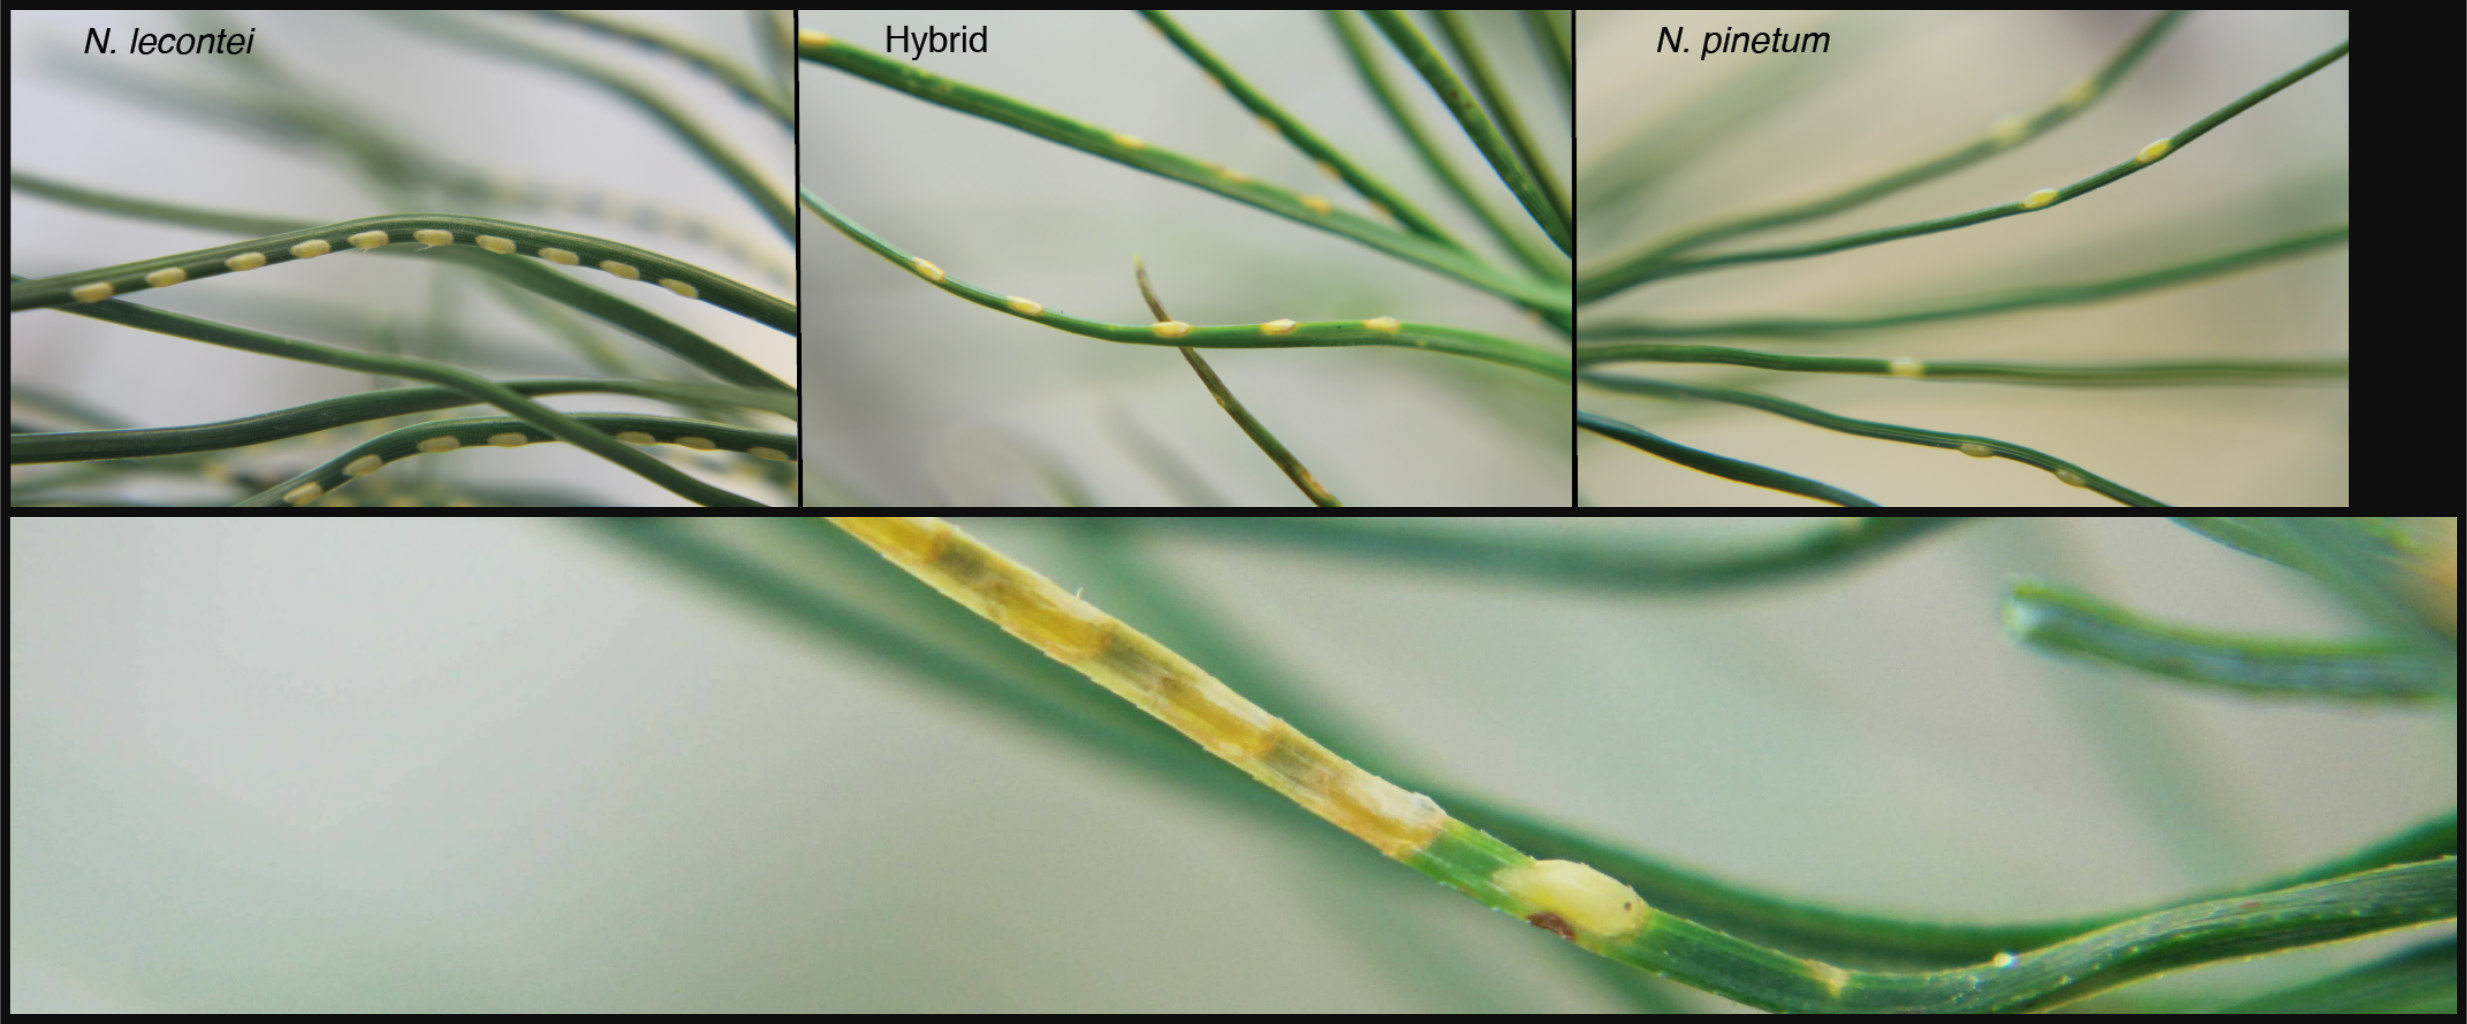 N. lecontei (top-left) females lay many closely spaced eggs per needle. N. pinetum (top-right) females lay few widely spaced eggs. Hybrid (top-middle) females have an intermediate egg laying pattern. Bottom image shows a single developing N. lecontei egg on white pine. The rest of the eggs on the needle have dried out and died